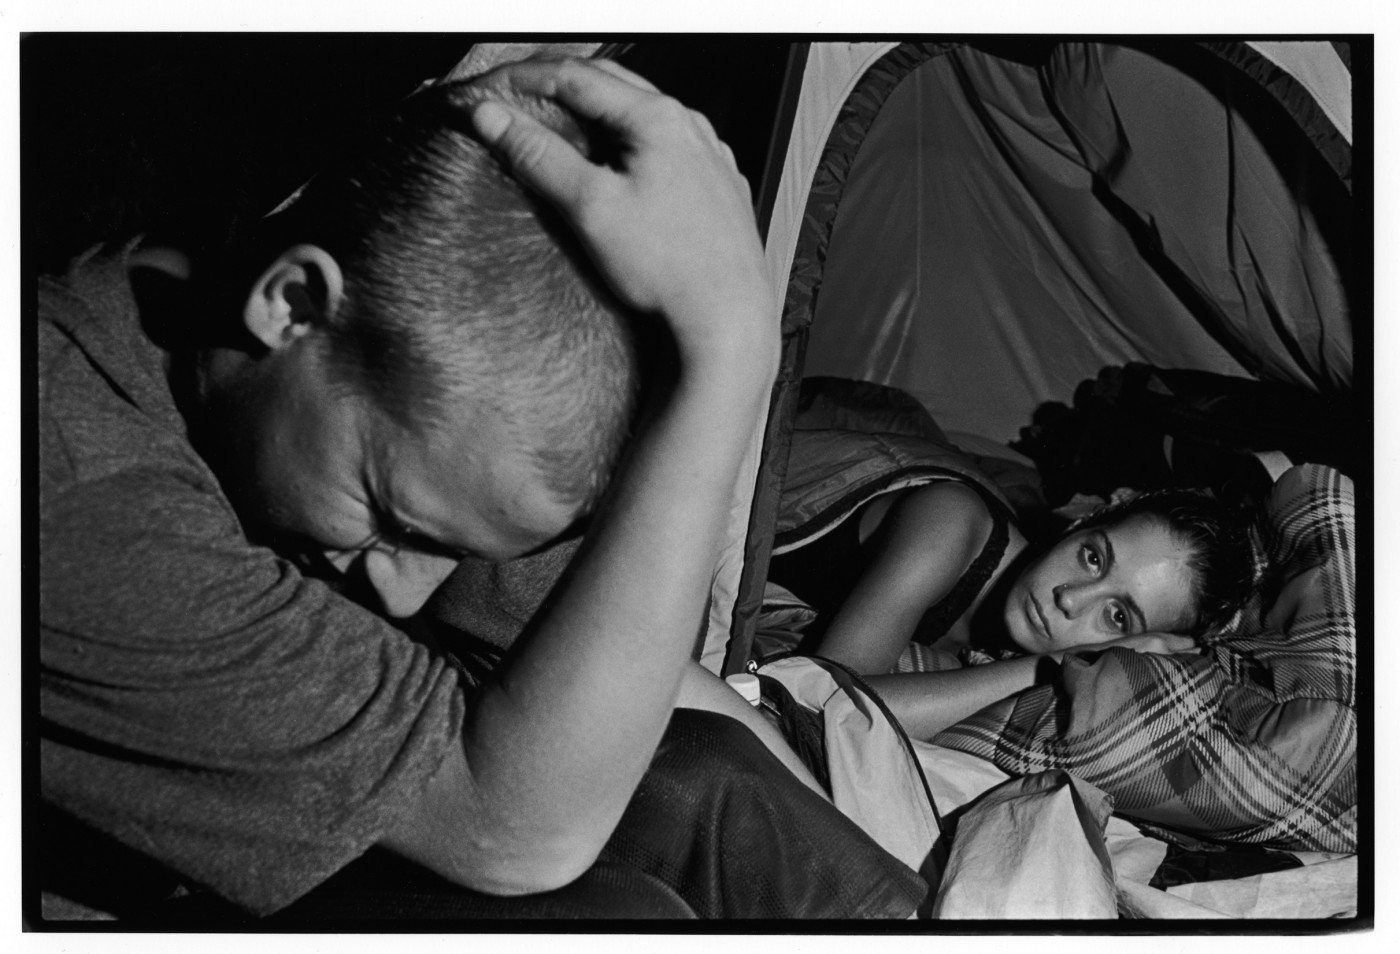 David Barker Maltby, </span><span><em>Teenage couple, Tent City, 2000</em>, </span><span>8.5 x 12.5